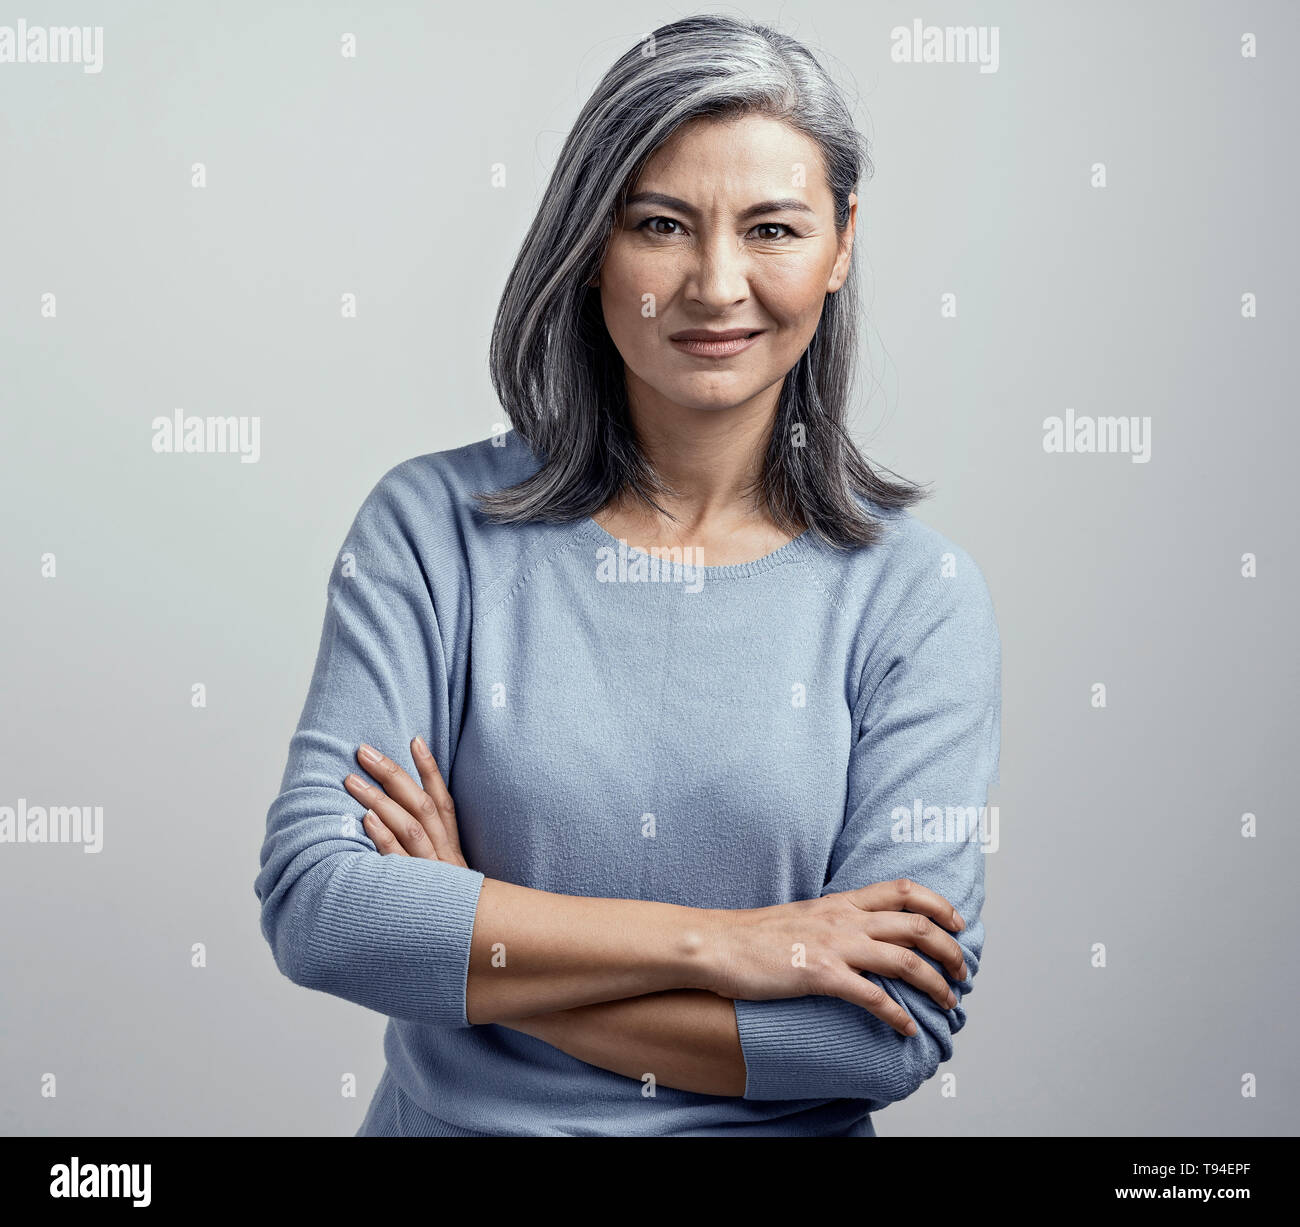 Asian senior woman with crossed arms shows dissproval - Stock Image